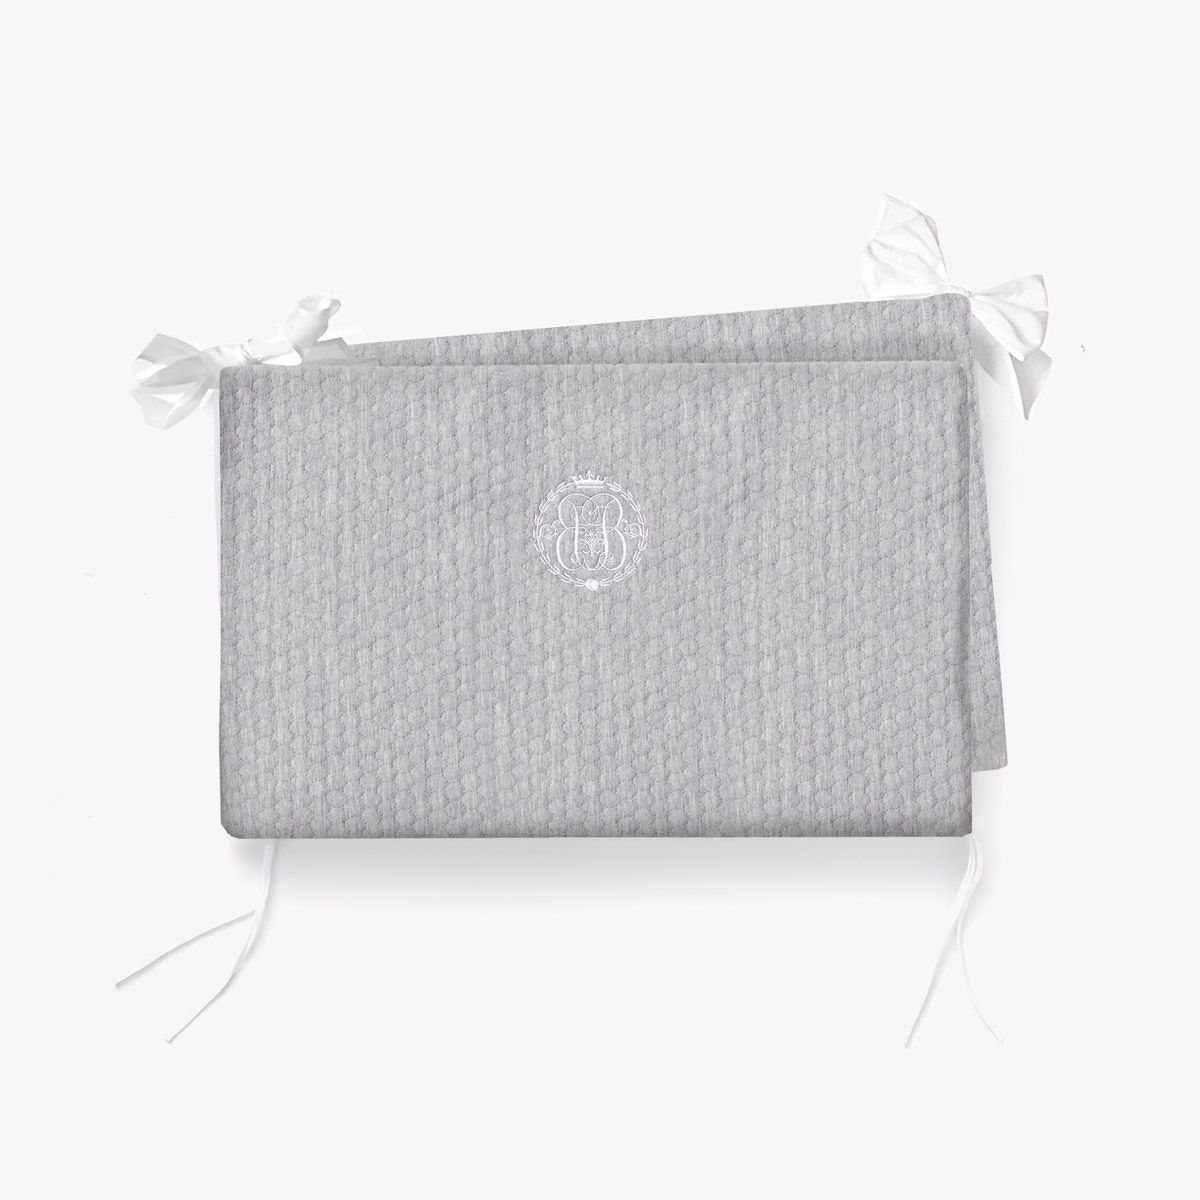 POMME CARAMEL BABY - BIRTH CASUAL CHIC Bumper PC-CMG-TDL